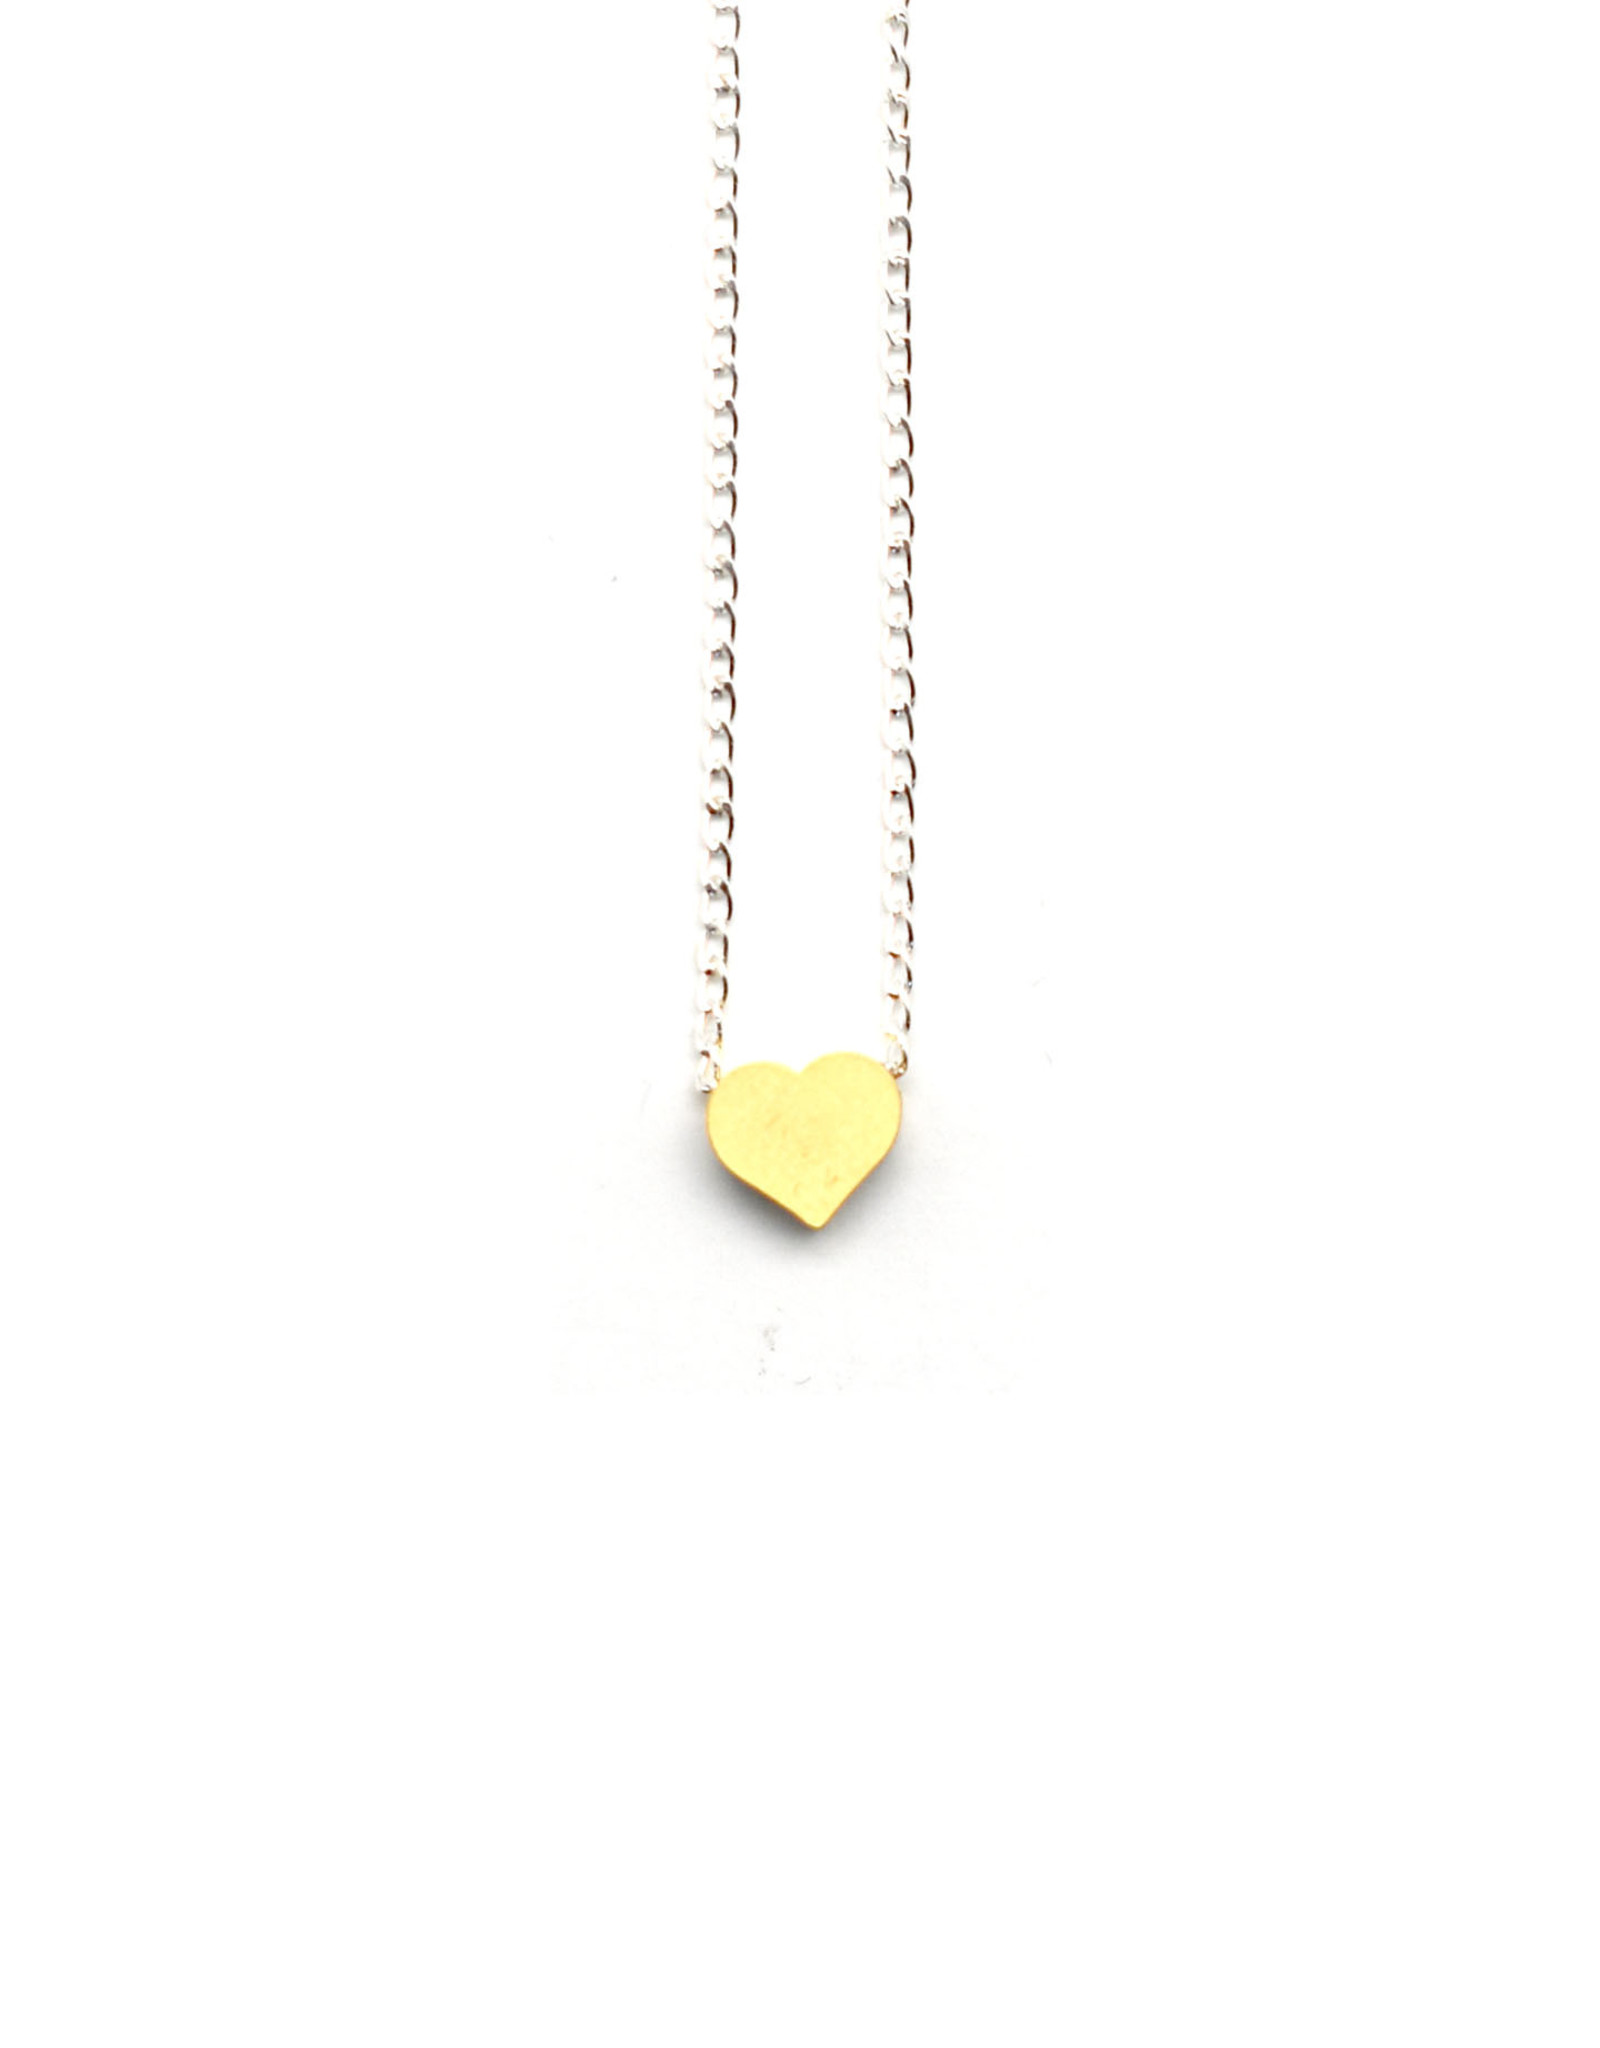 Petite Tiny Layering Heart Necklace - Gold Heart, Silver Chain